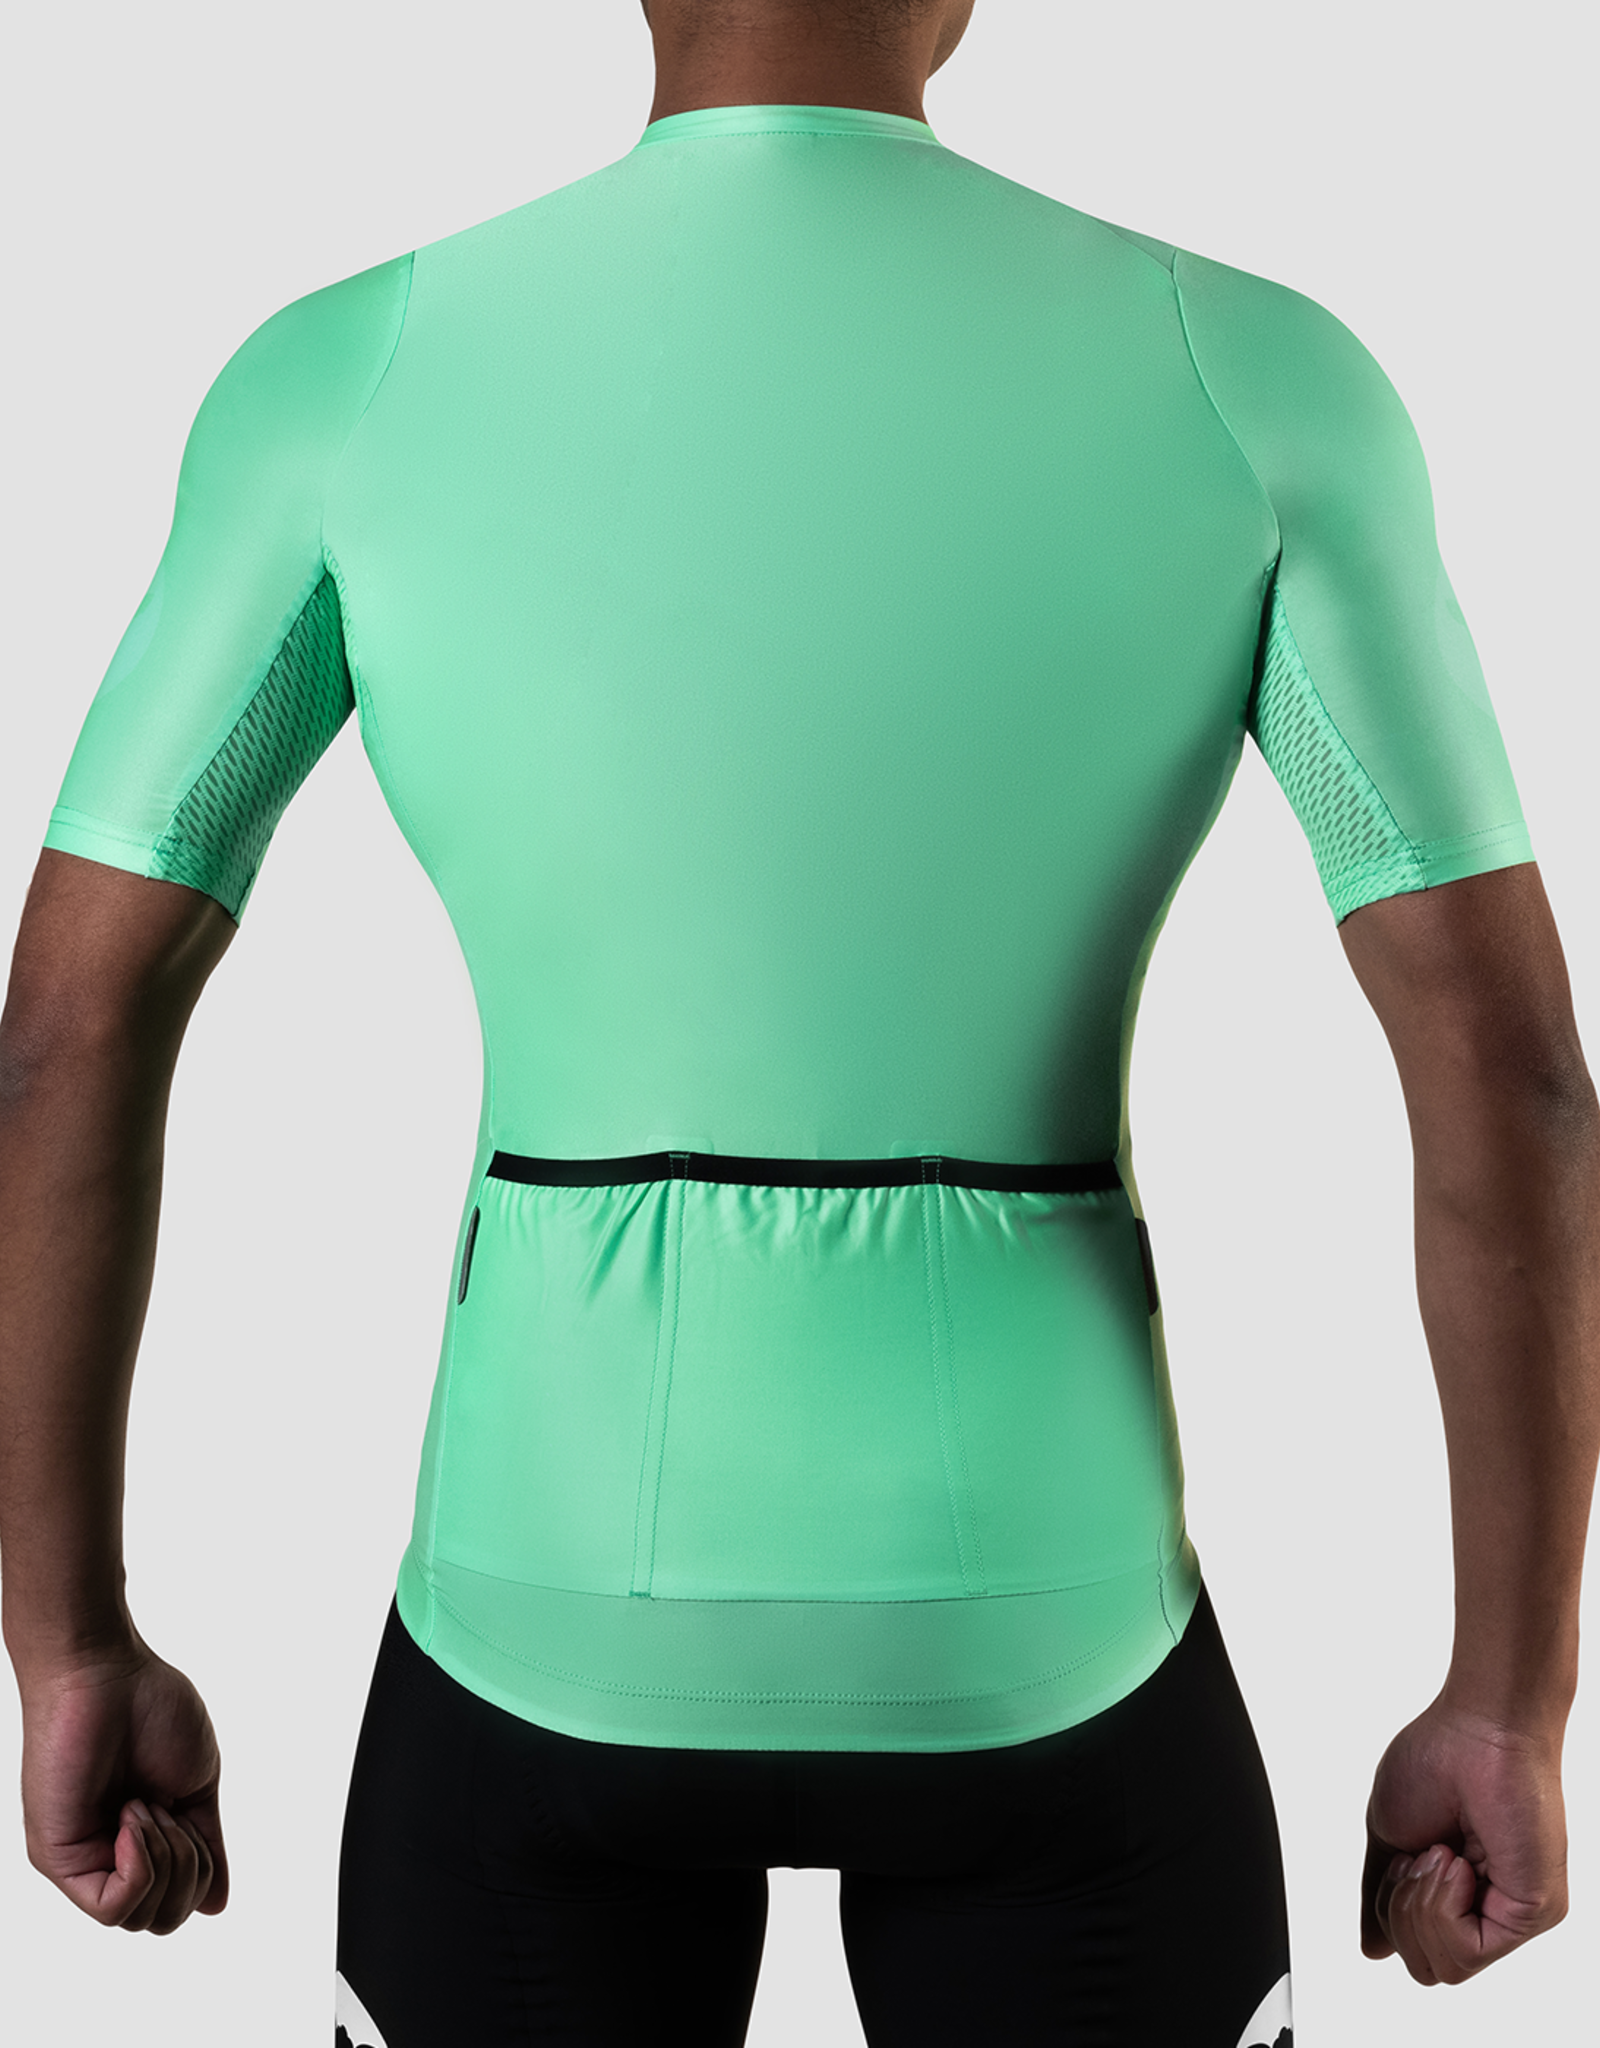 Black Sheep Cycling Men's TEAM jersey - Block Neon Green